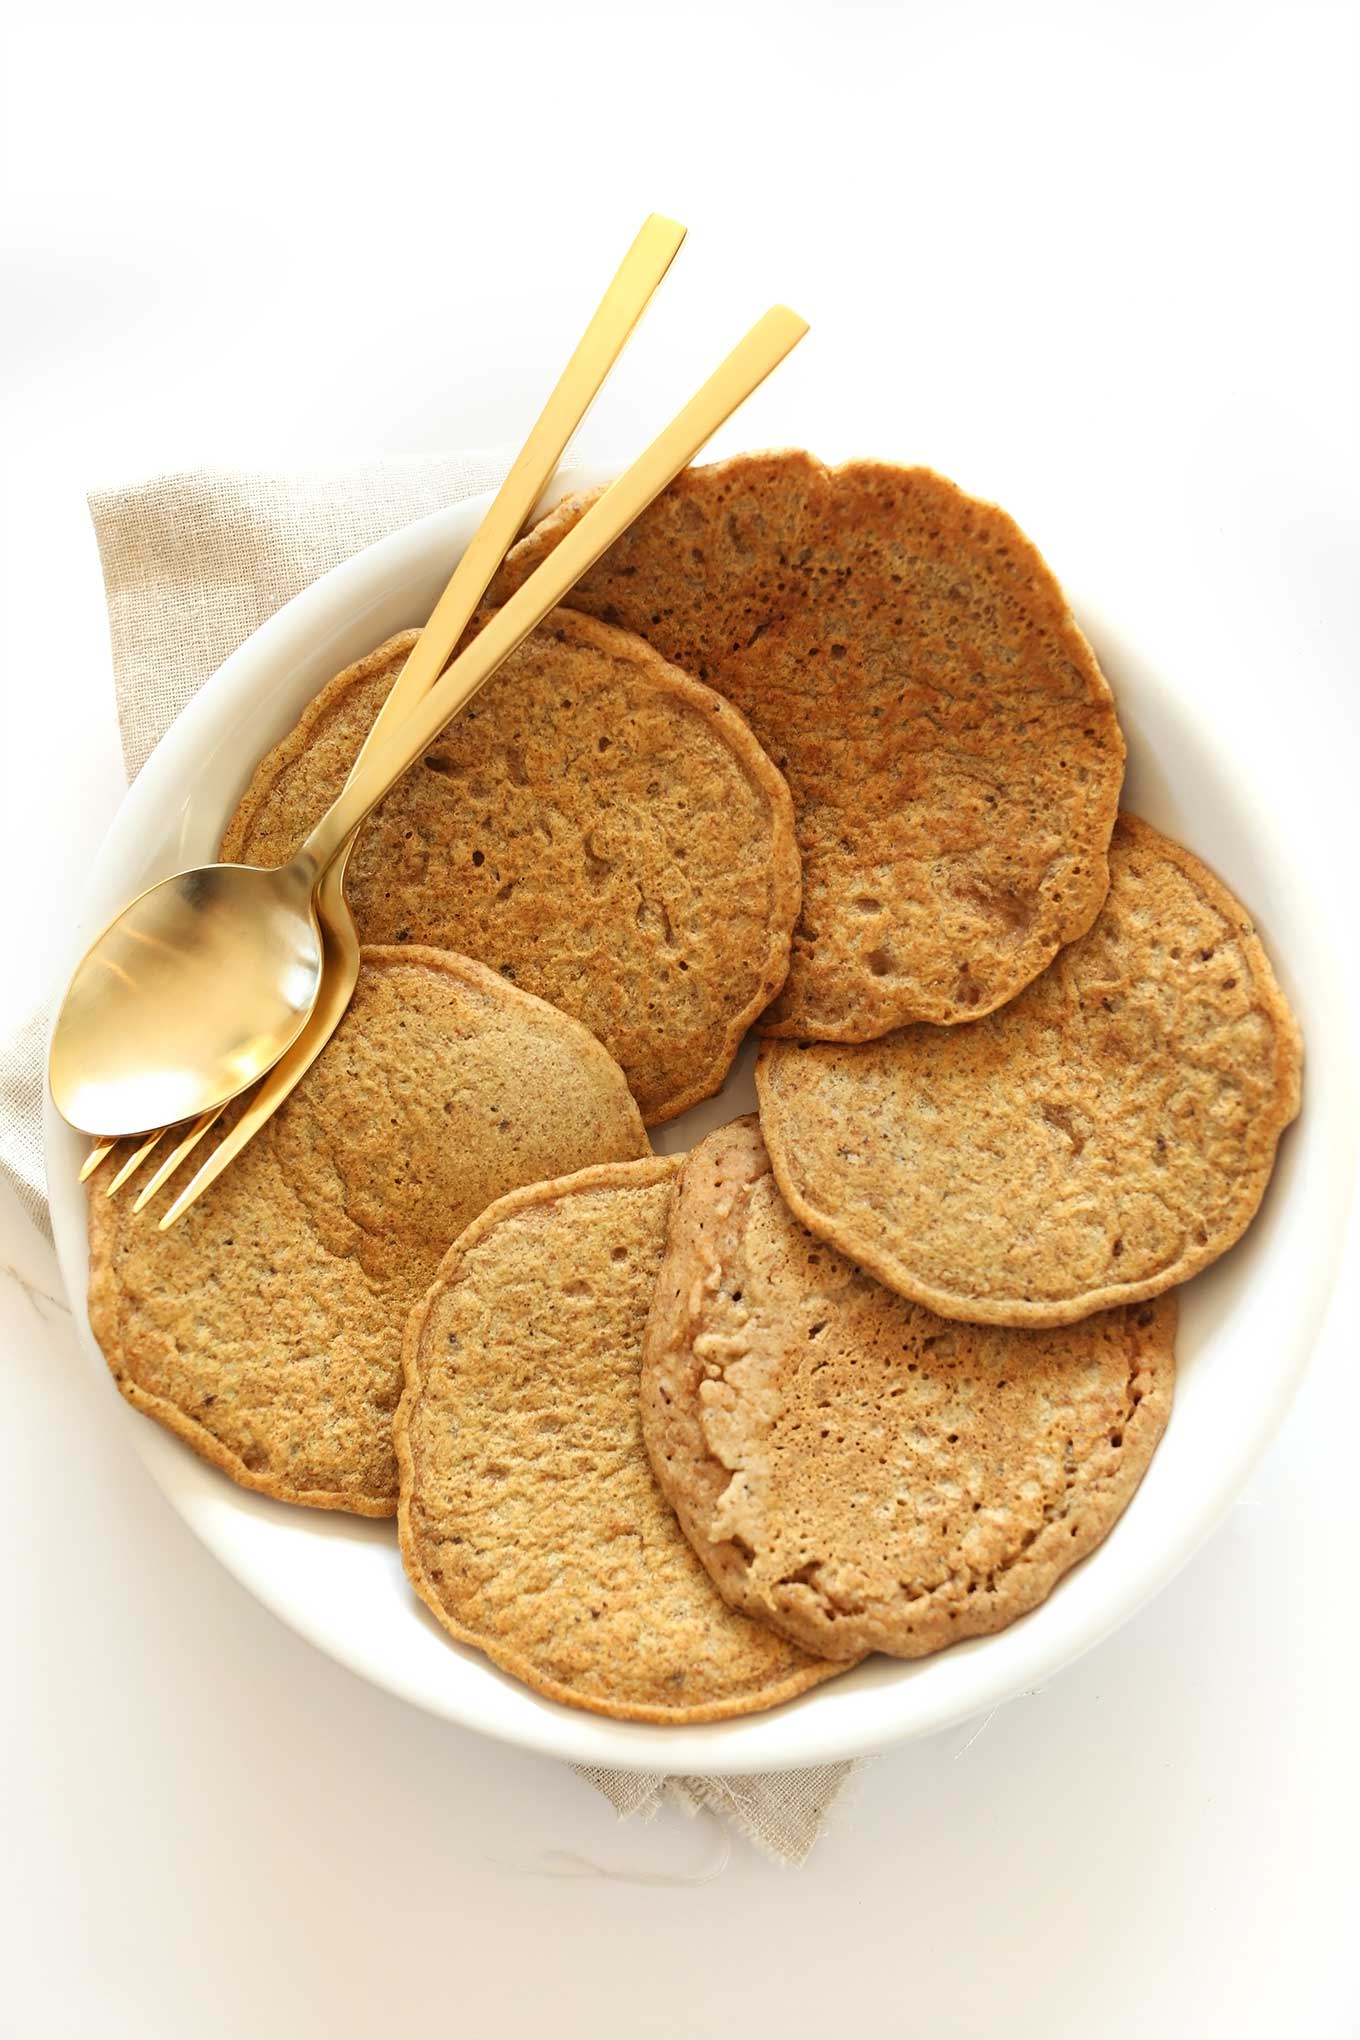 Plate of Whole Grain, Healthy Pancakes for a weekend vegan breakfast